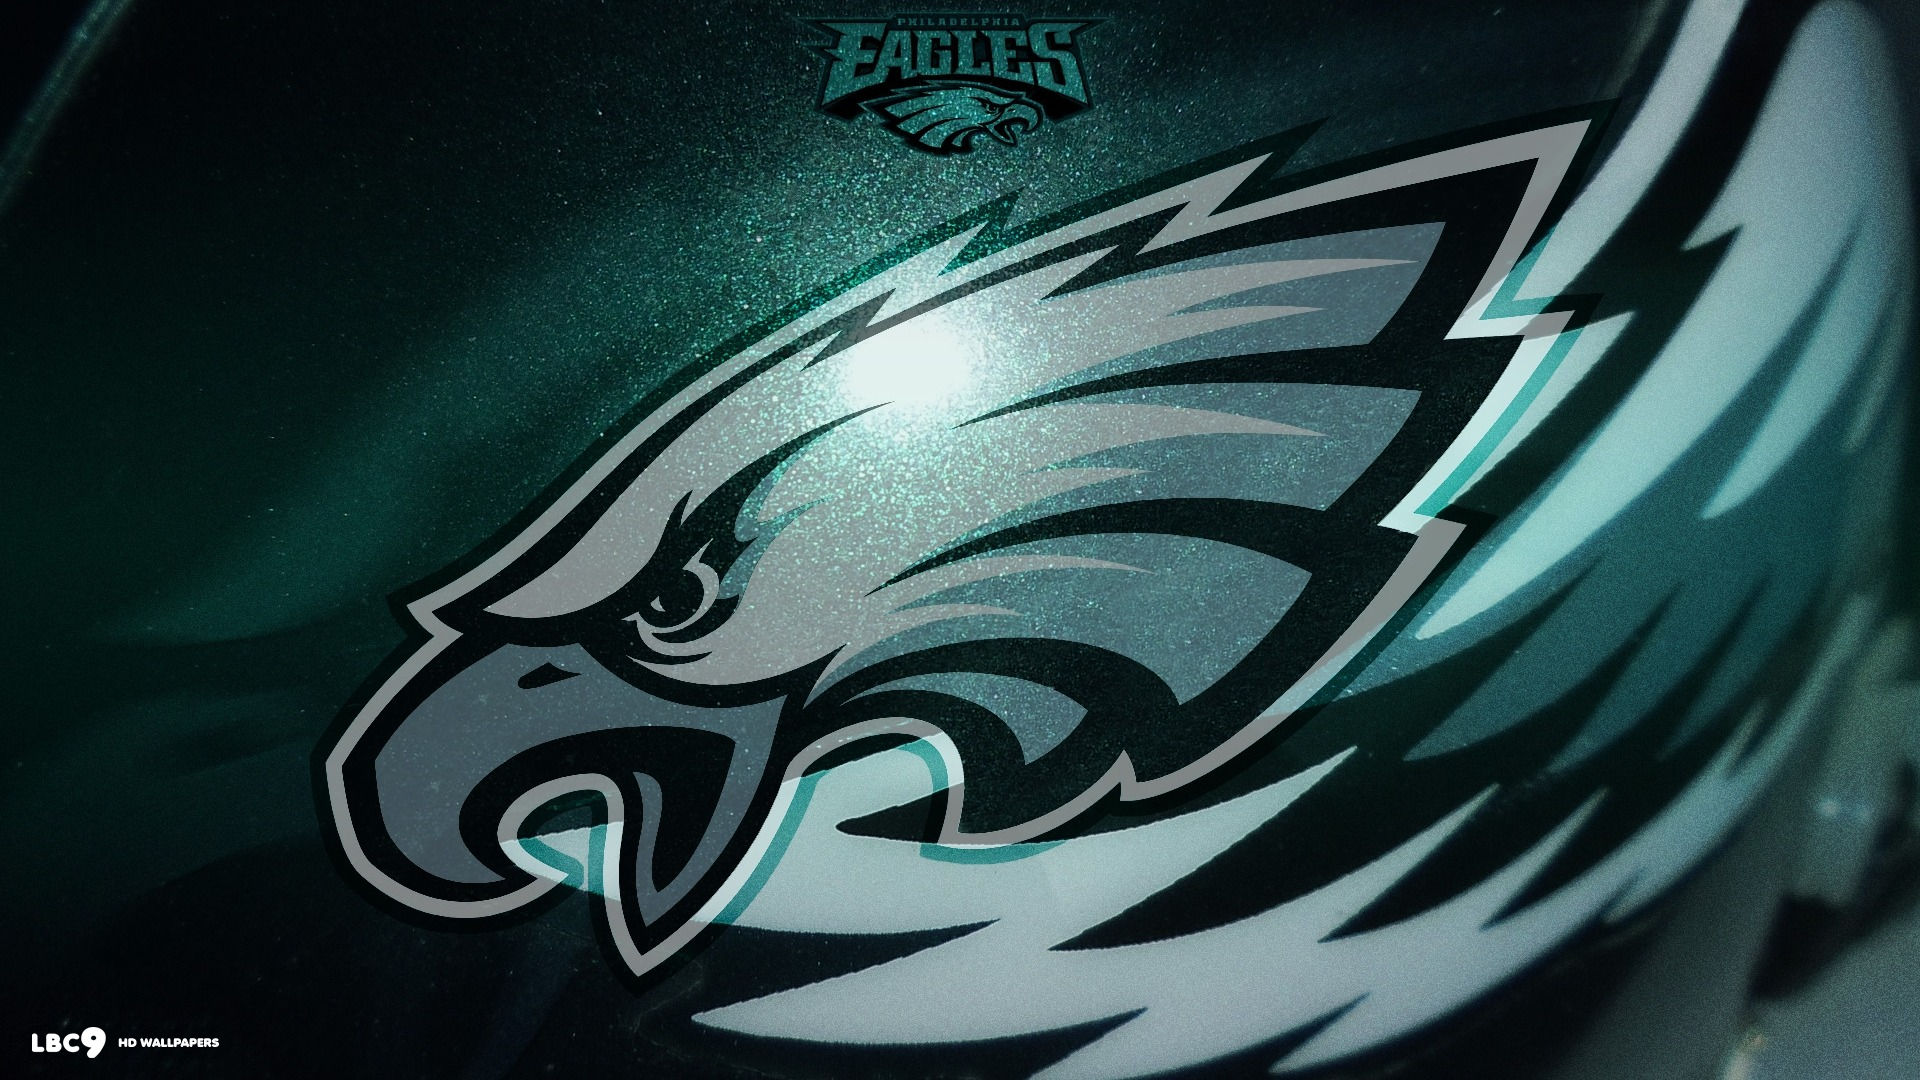 NFL Team Desktop Wallpaper   52DazheW Gallery 1920x1080